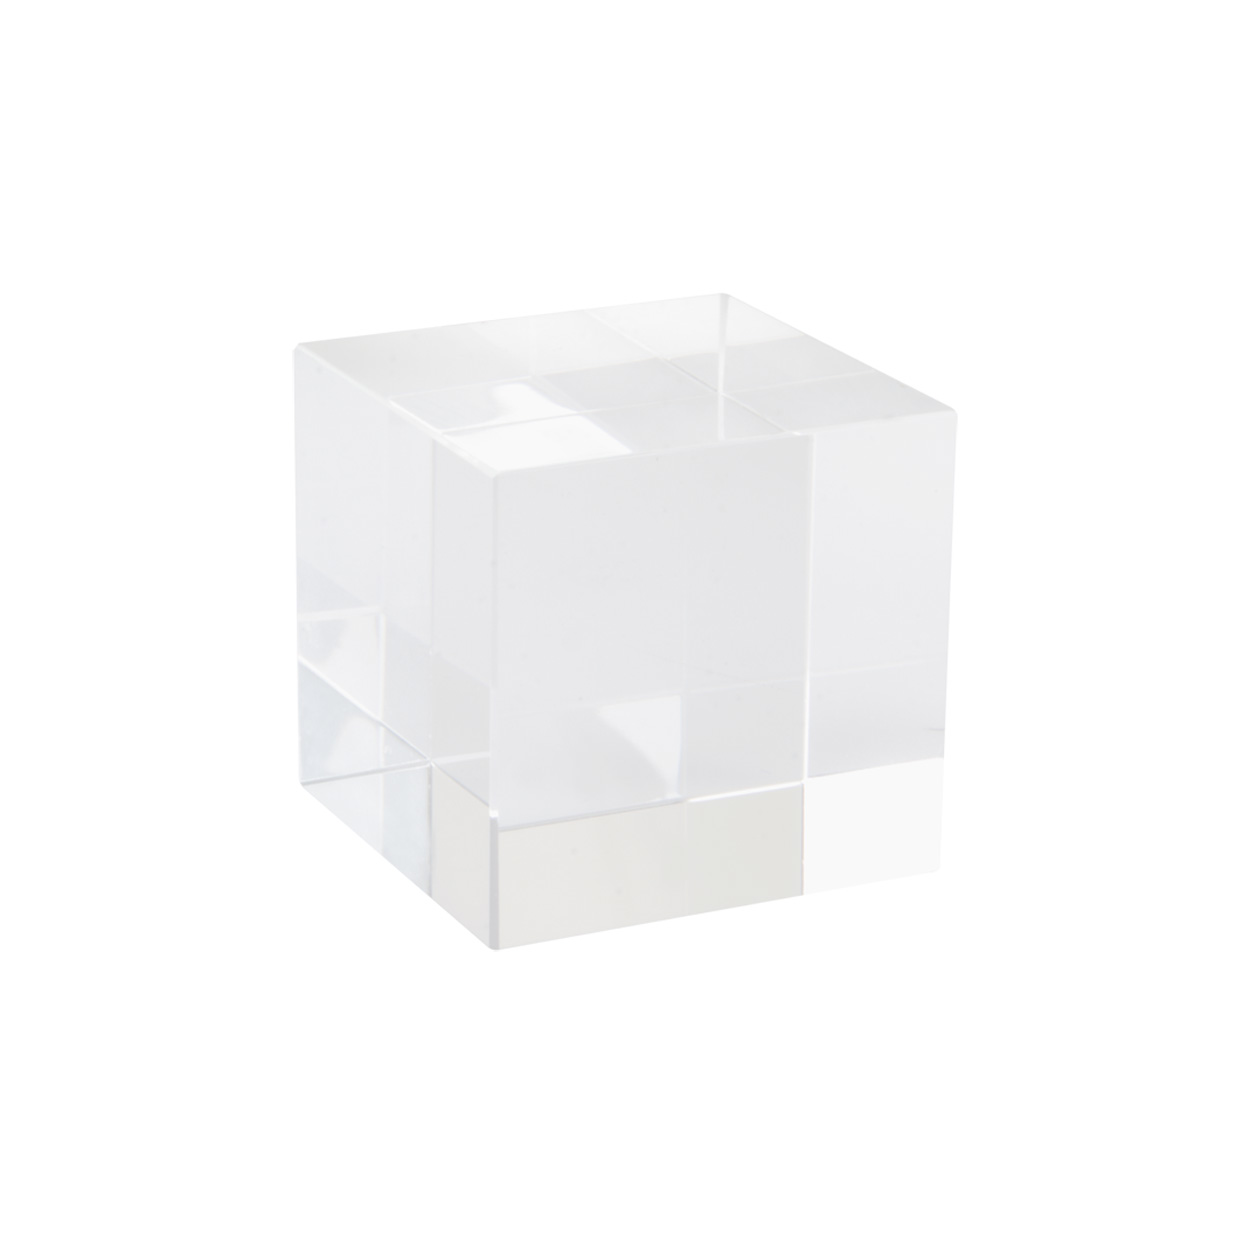 Tampa glass cube